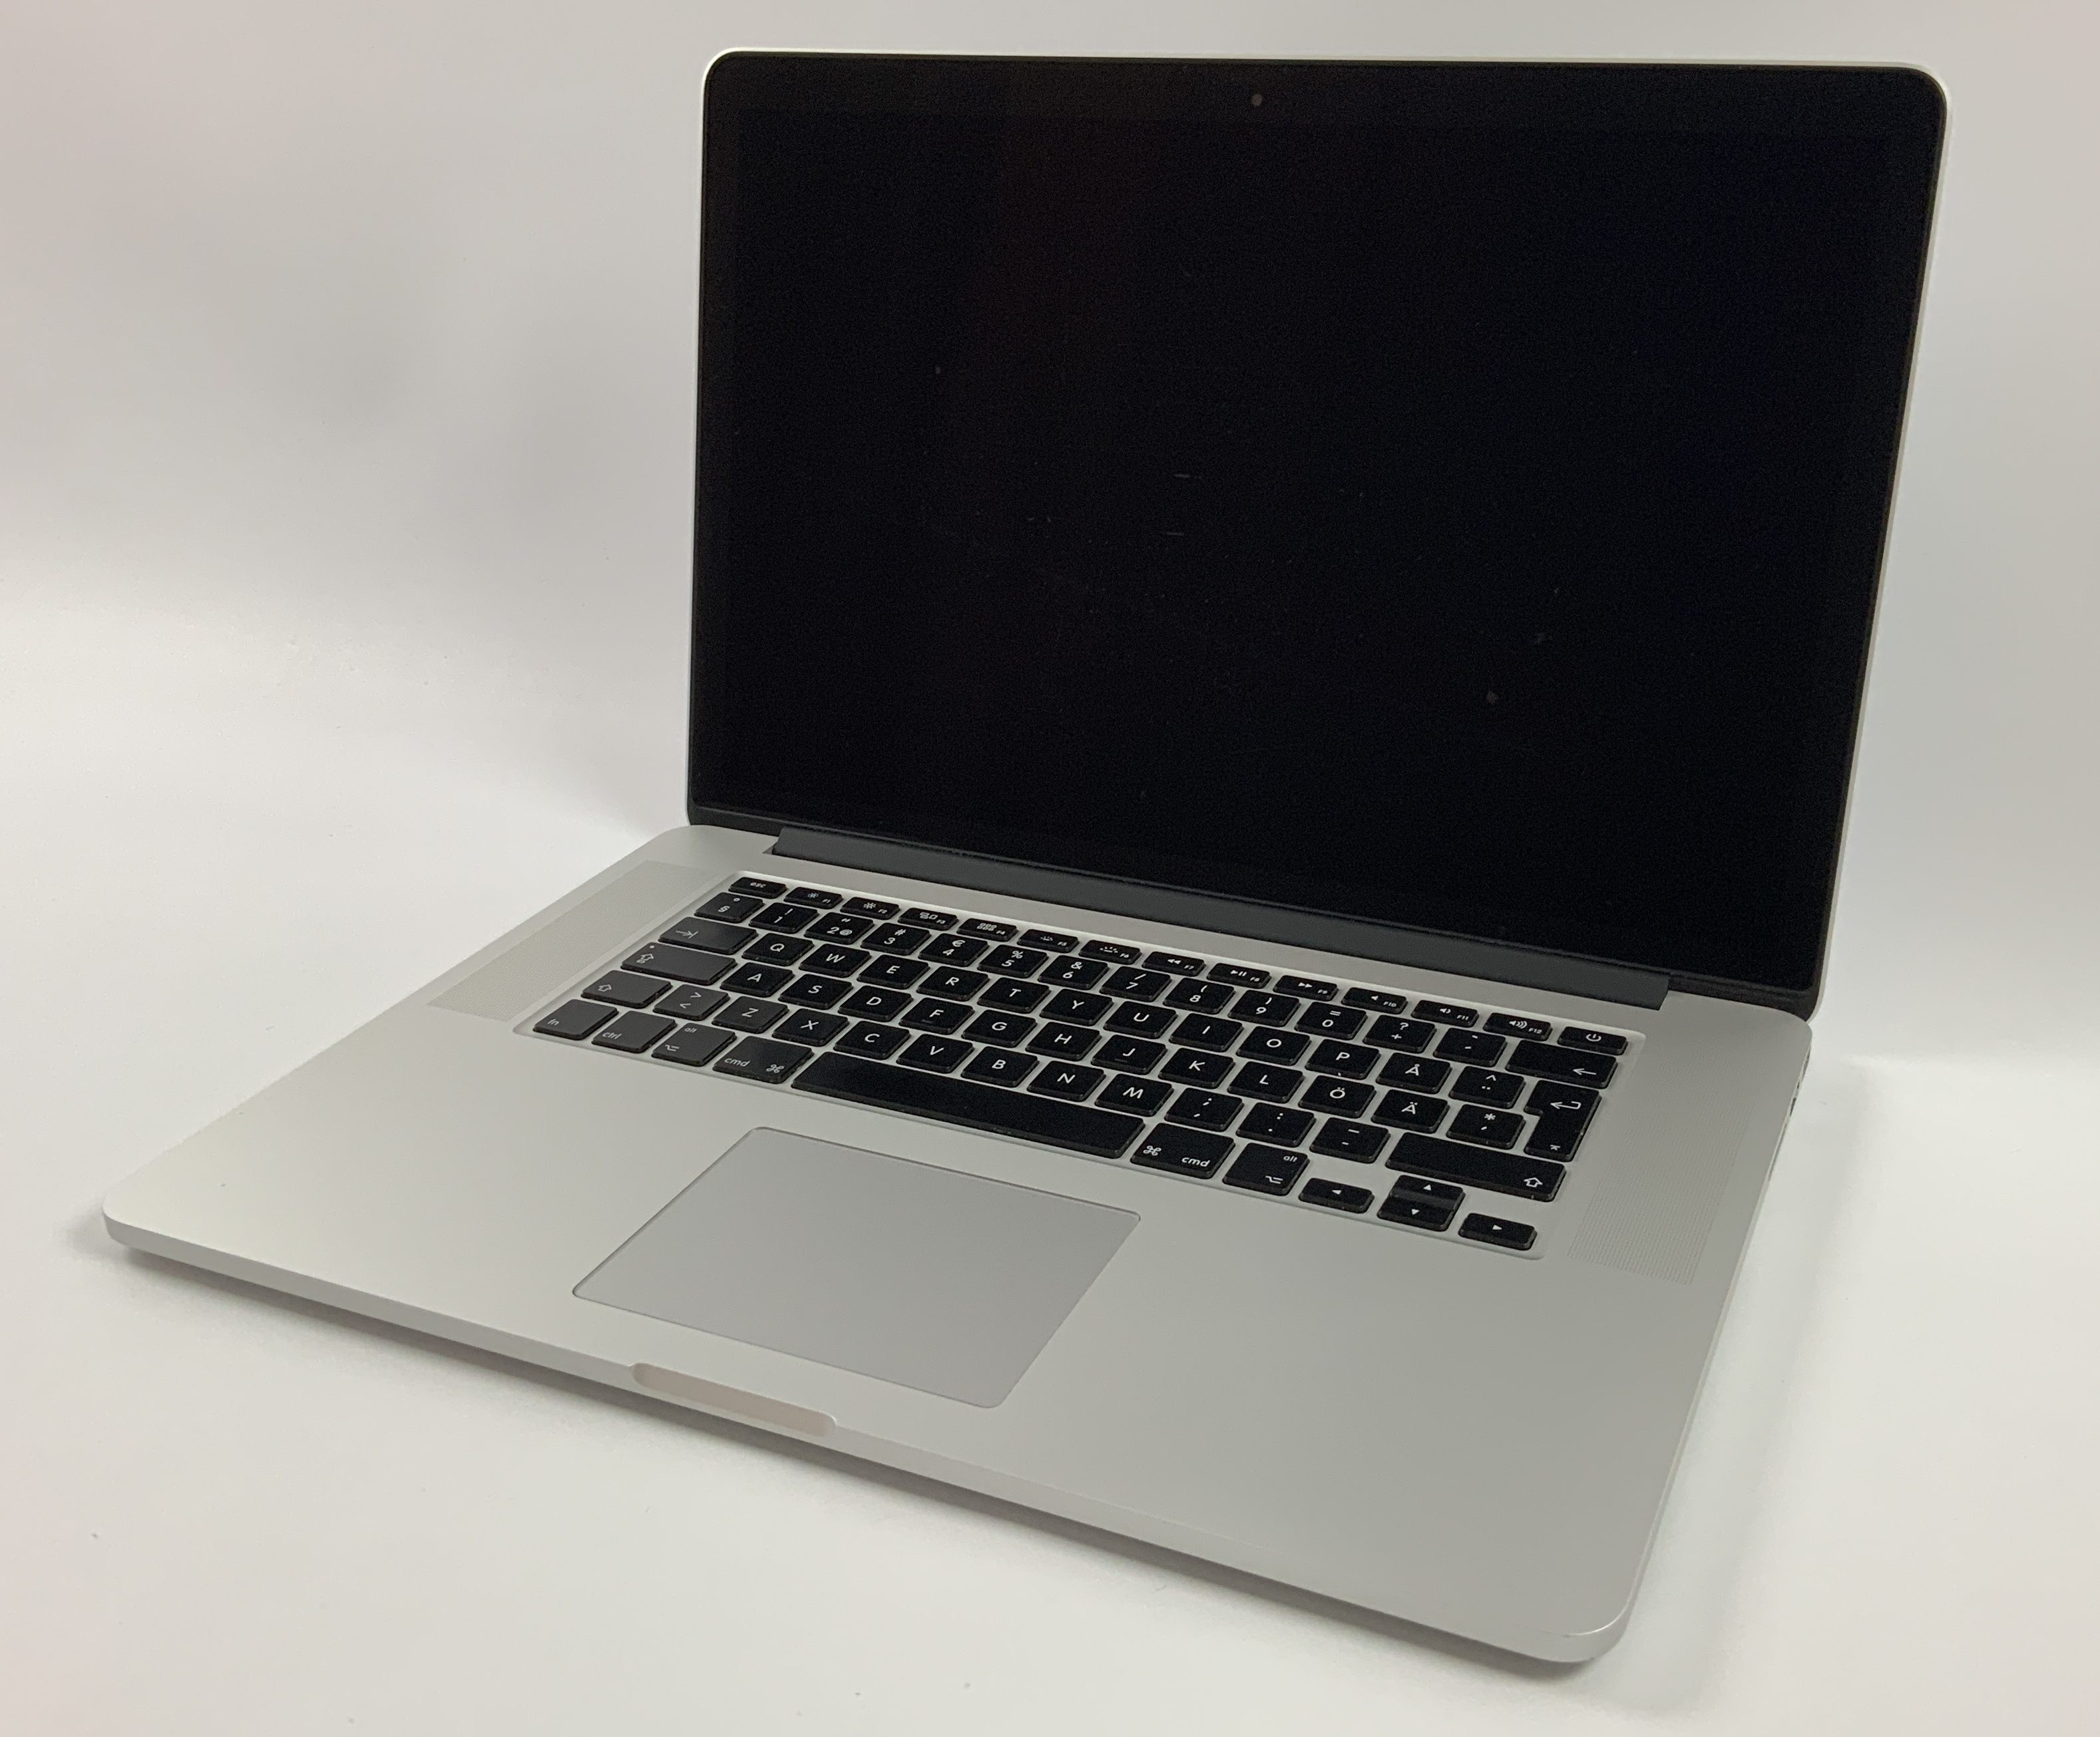 "MacBook Pro Retina 15"" Mid 2015 (Intel Quad-Core i7 2.8 GHz 16 GB RAM 512 GB SSD), Intel Quad-Core i7 2.8 GHz, 16 GB RAM, 512 GB SSD, immagine 1"